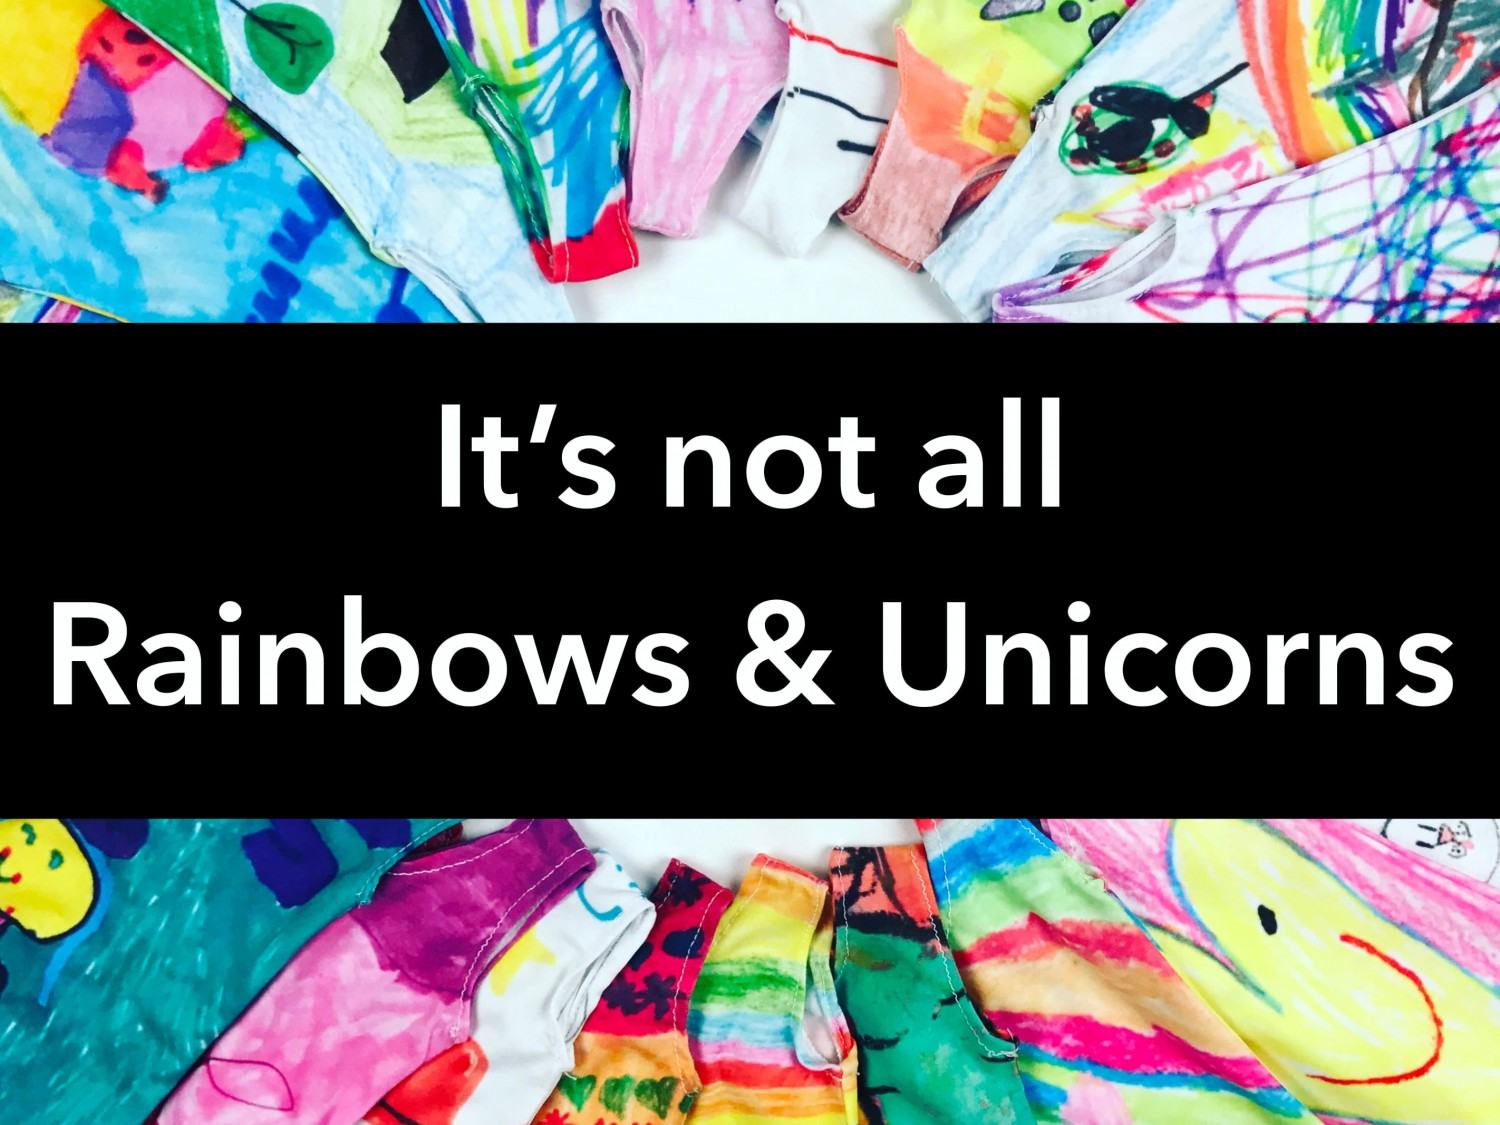 It's Not All Rainbows and Unicorns (1)